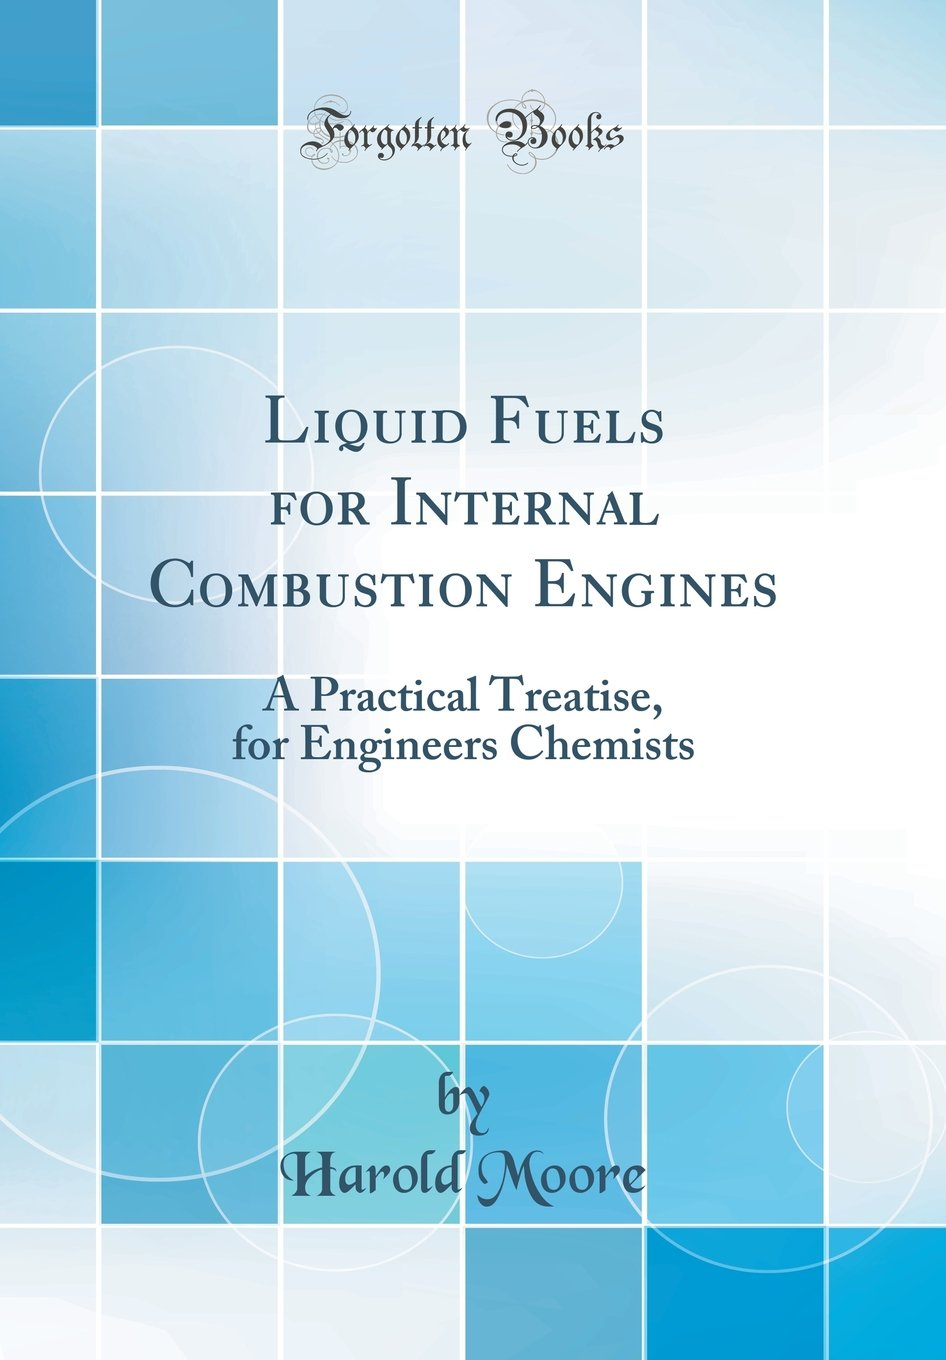 Liquid Fuels for Internal Combustion Engines: A Practical Treatise, for Engineers Chemists (Classic Reprint)